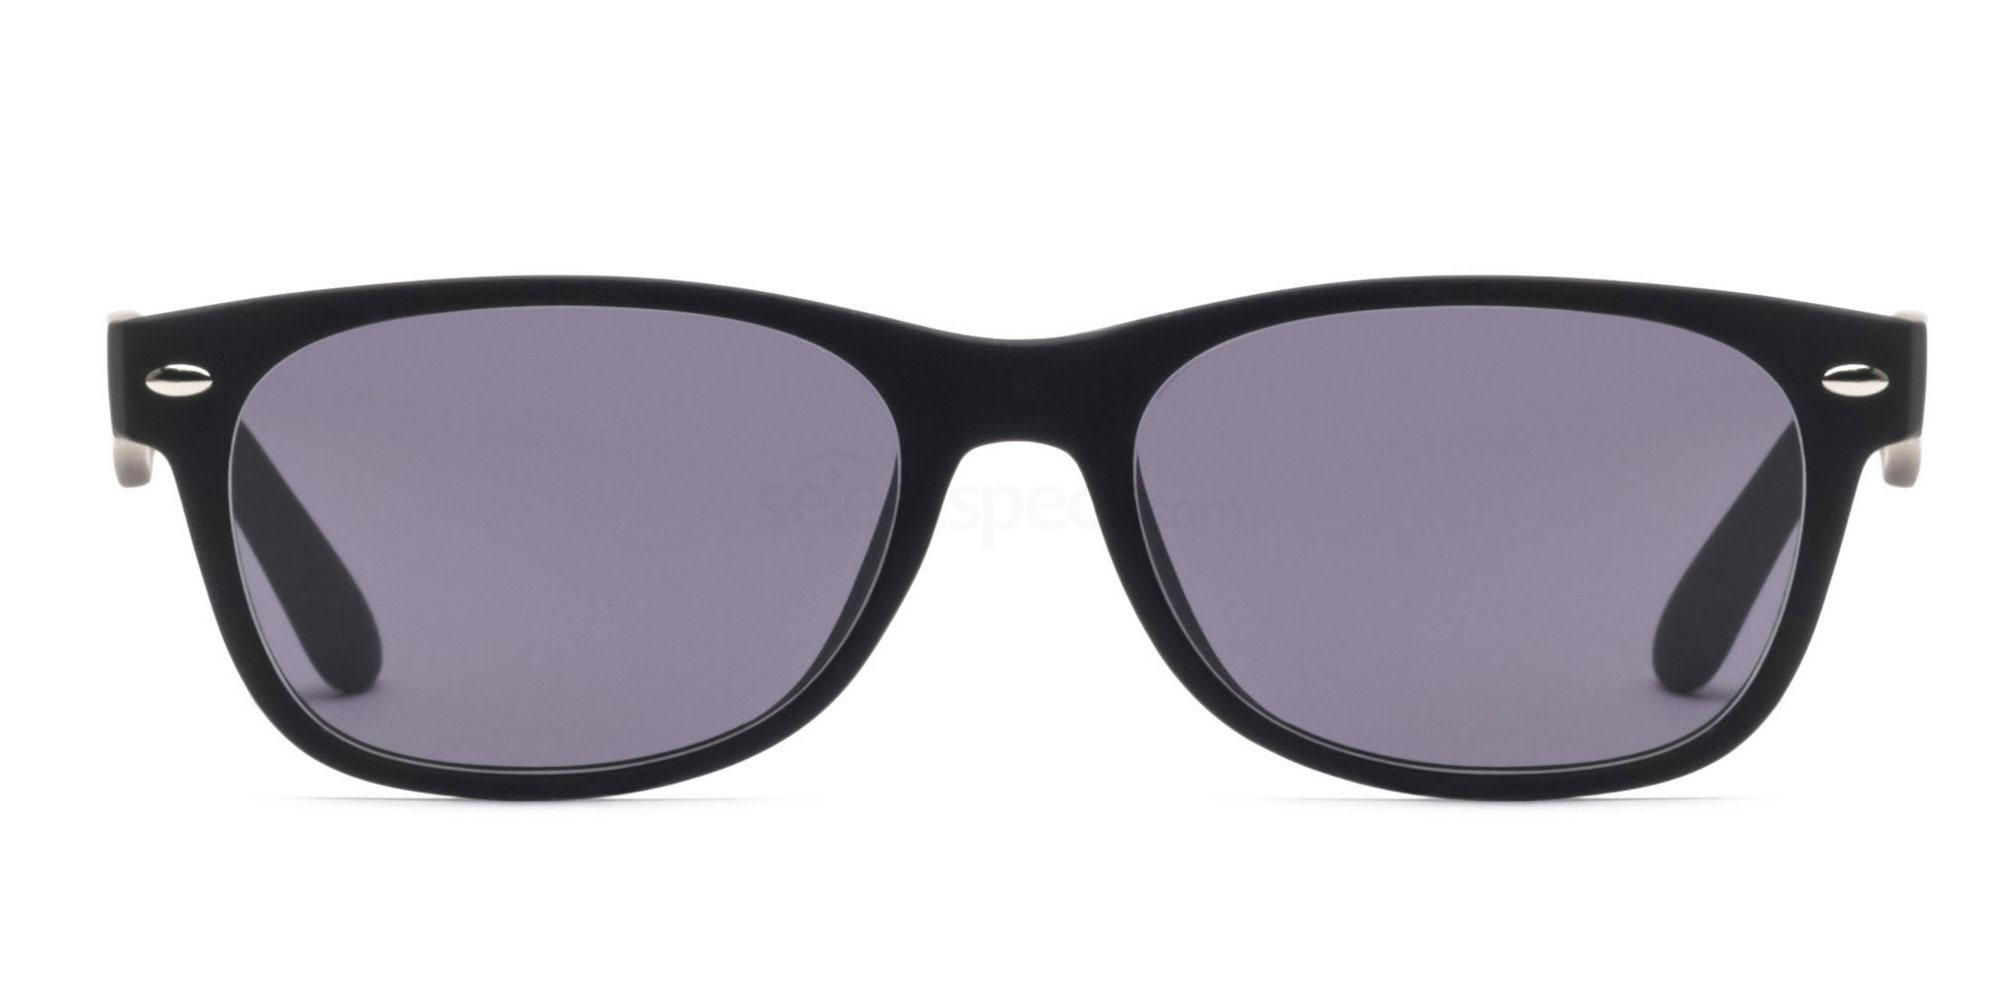 Black S8122 - Black (Sunglasses) , Savannah